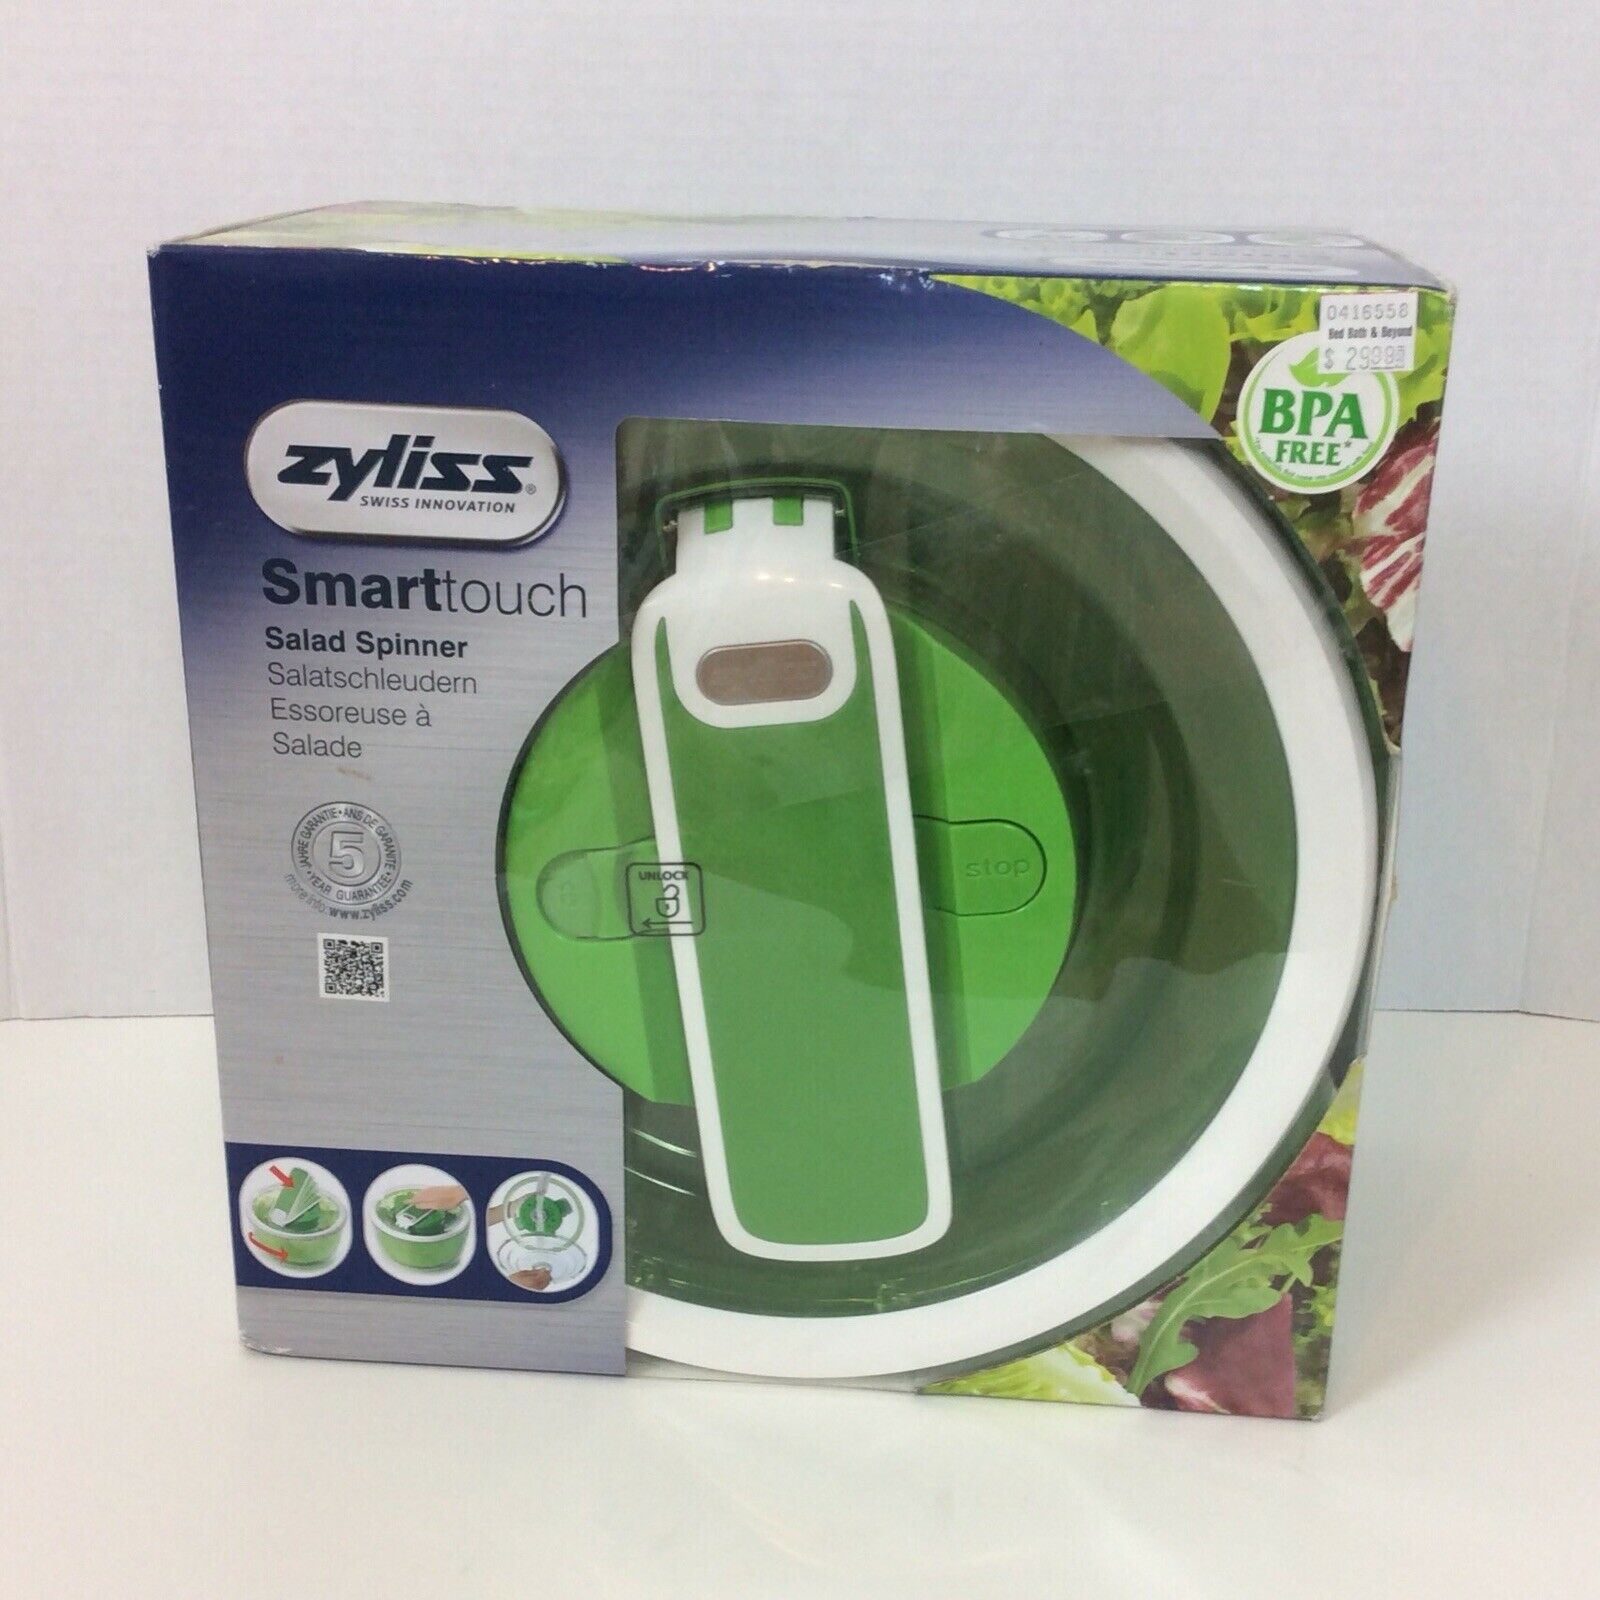 ZYLISS Swift Dry Salad Spinner BPA Free Smarttouch Dishwashe